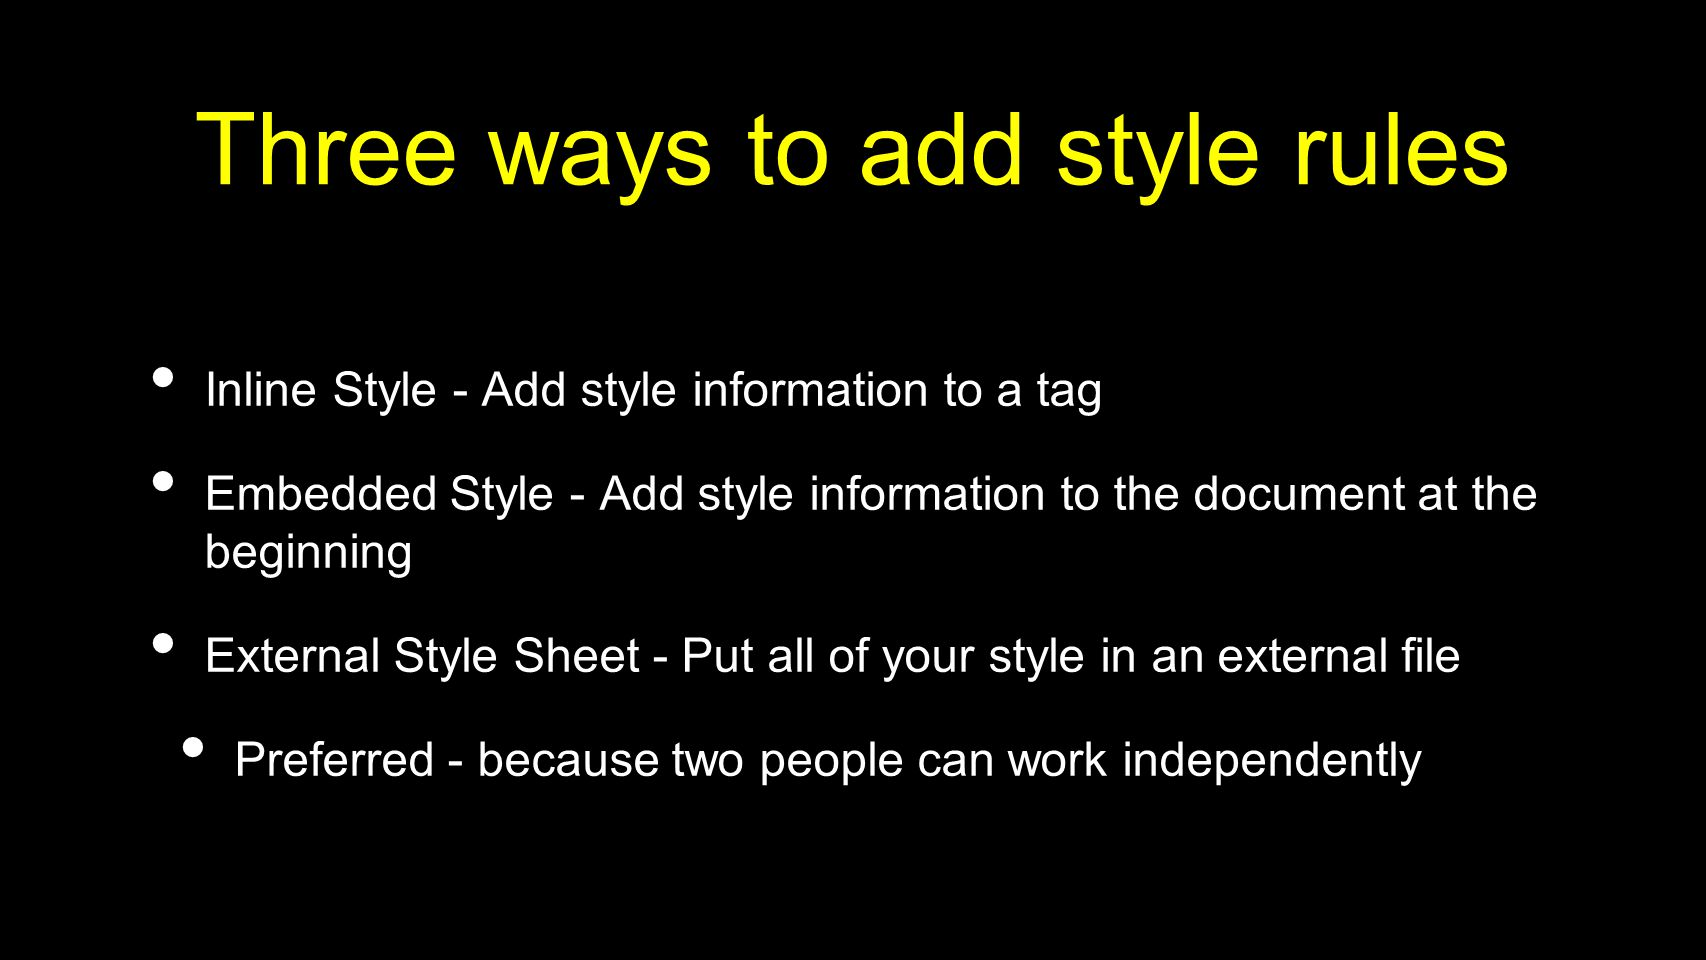 Three ways to add style rules Inline Style - Add style information to a tag Embedded Style - Add style information to the document at the beginning External Style Sheet - Put all of your style in an external file Preferred - because two people can work independently